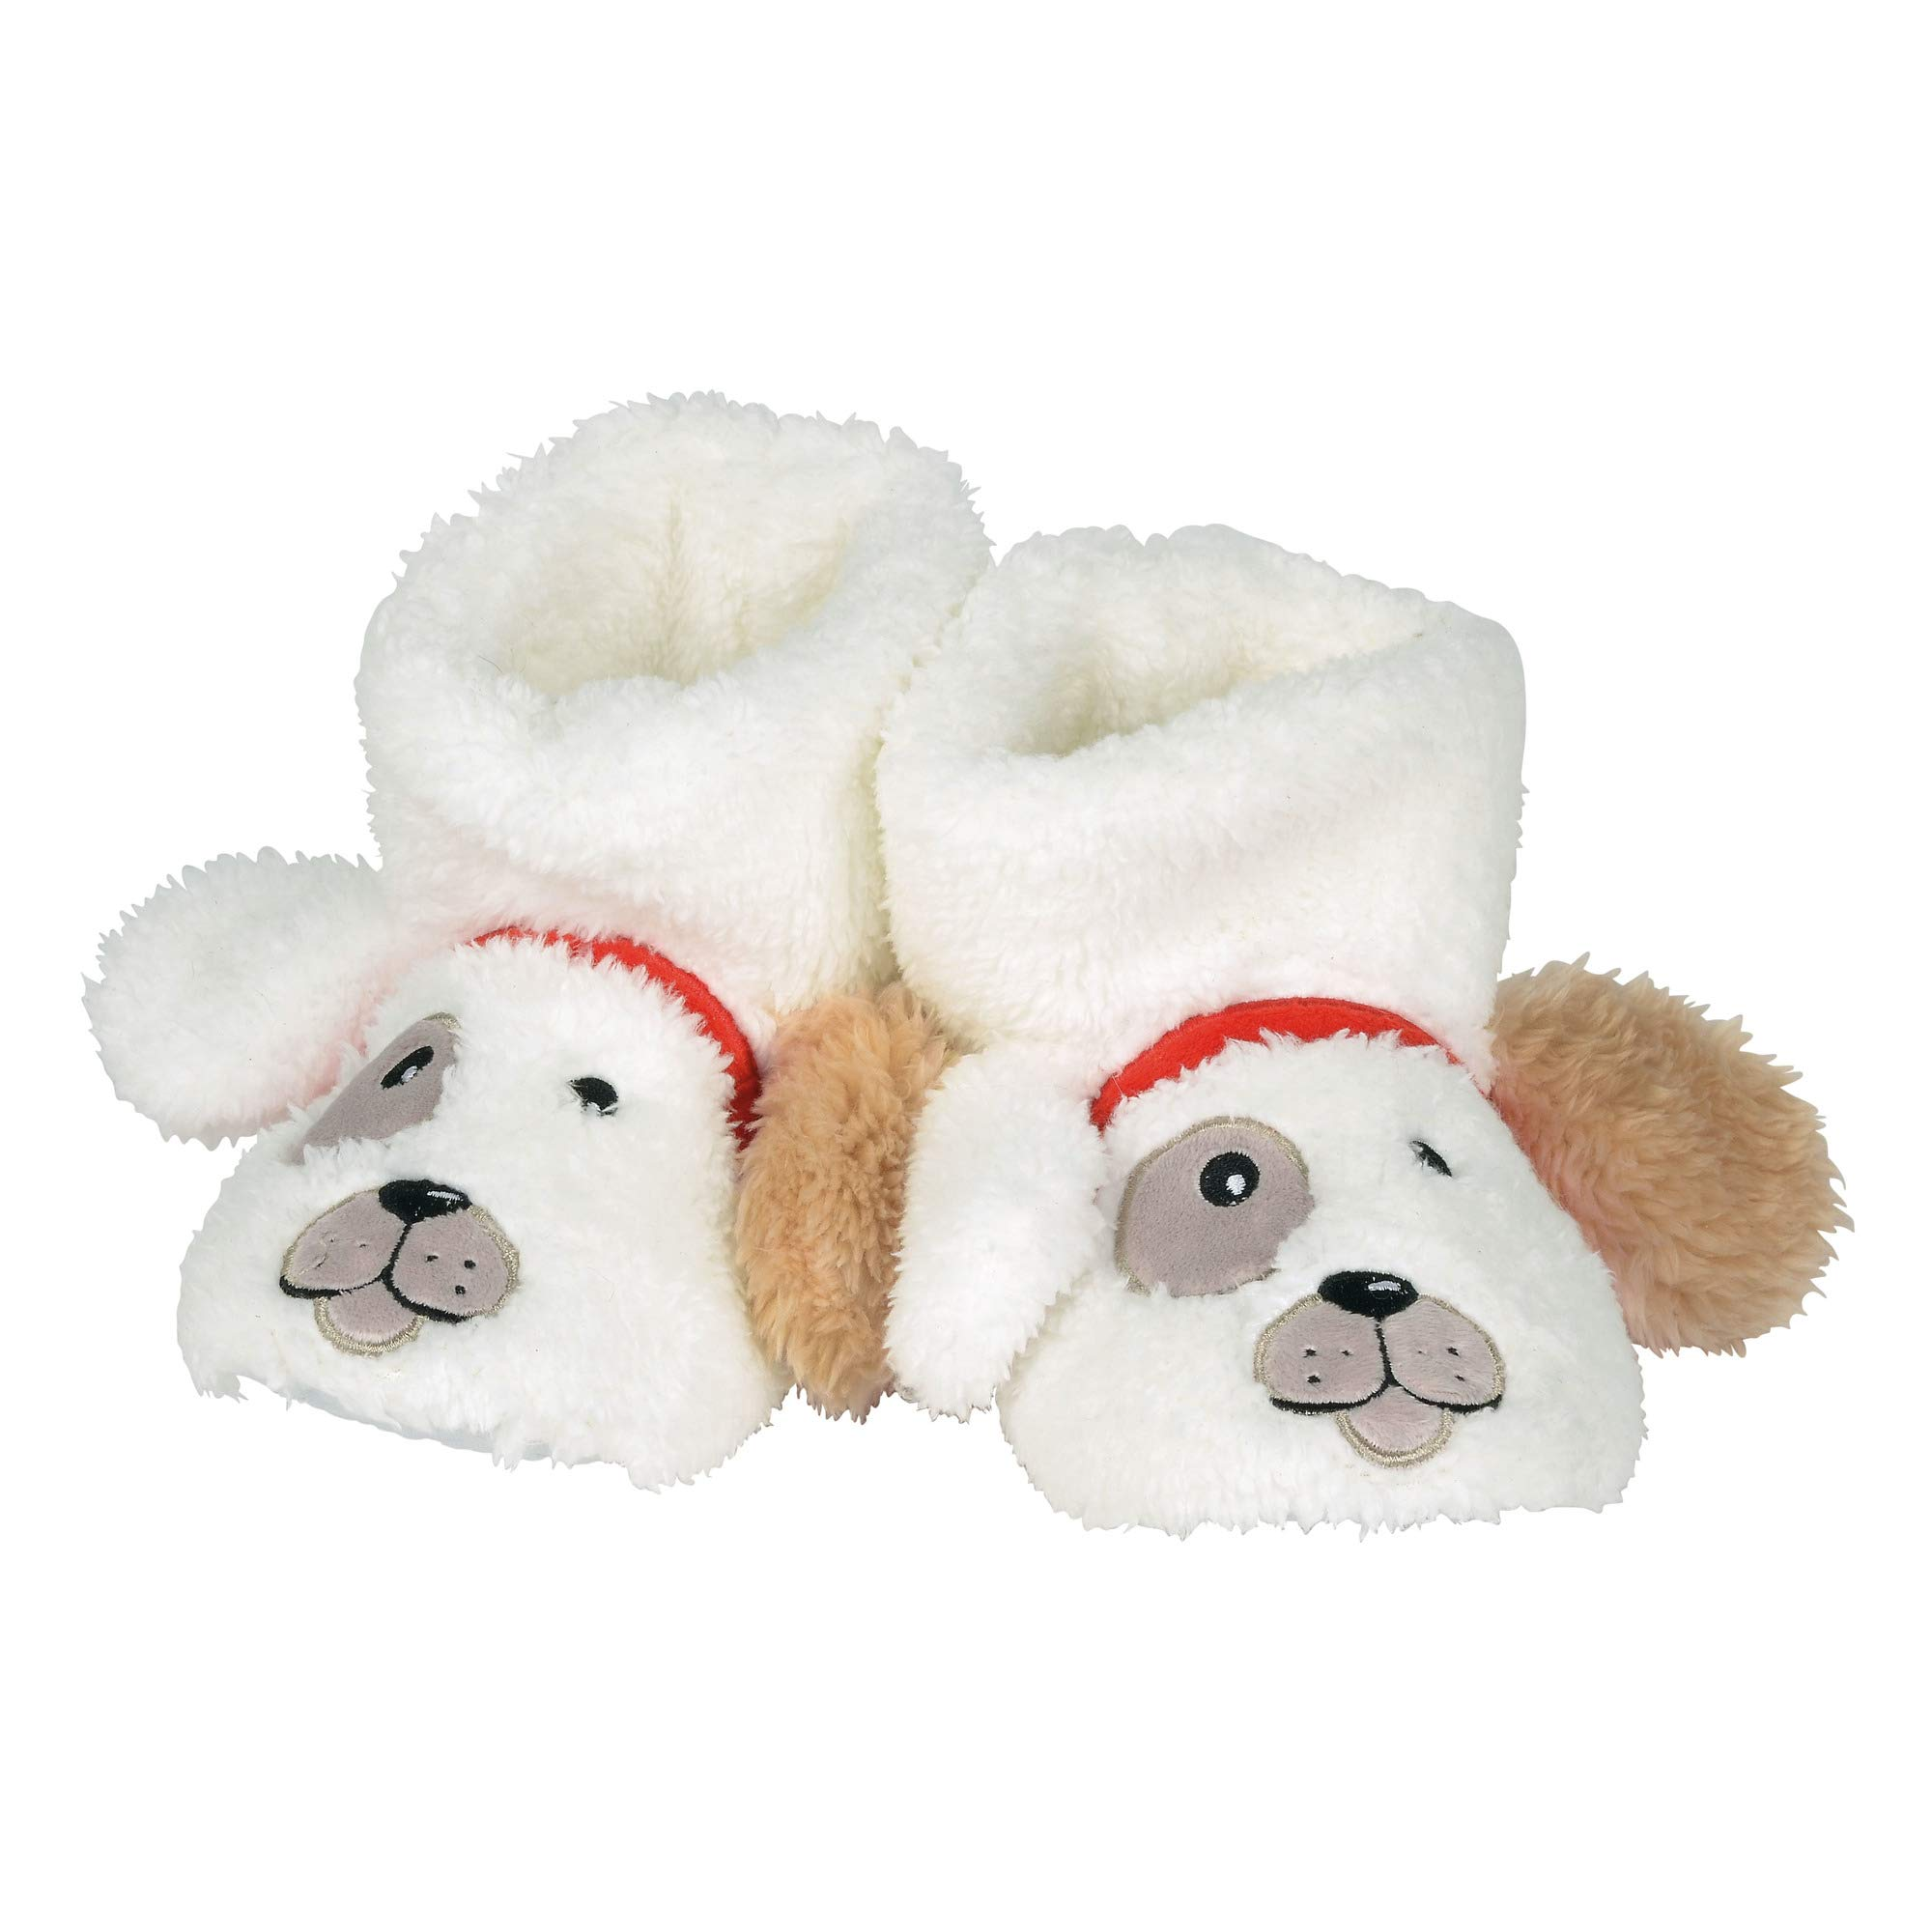 """Department 56 Snowpinions """"Dog Slippers, Child Small Size 7-8, Multicolor"""